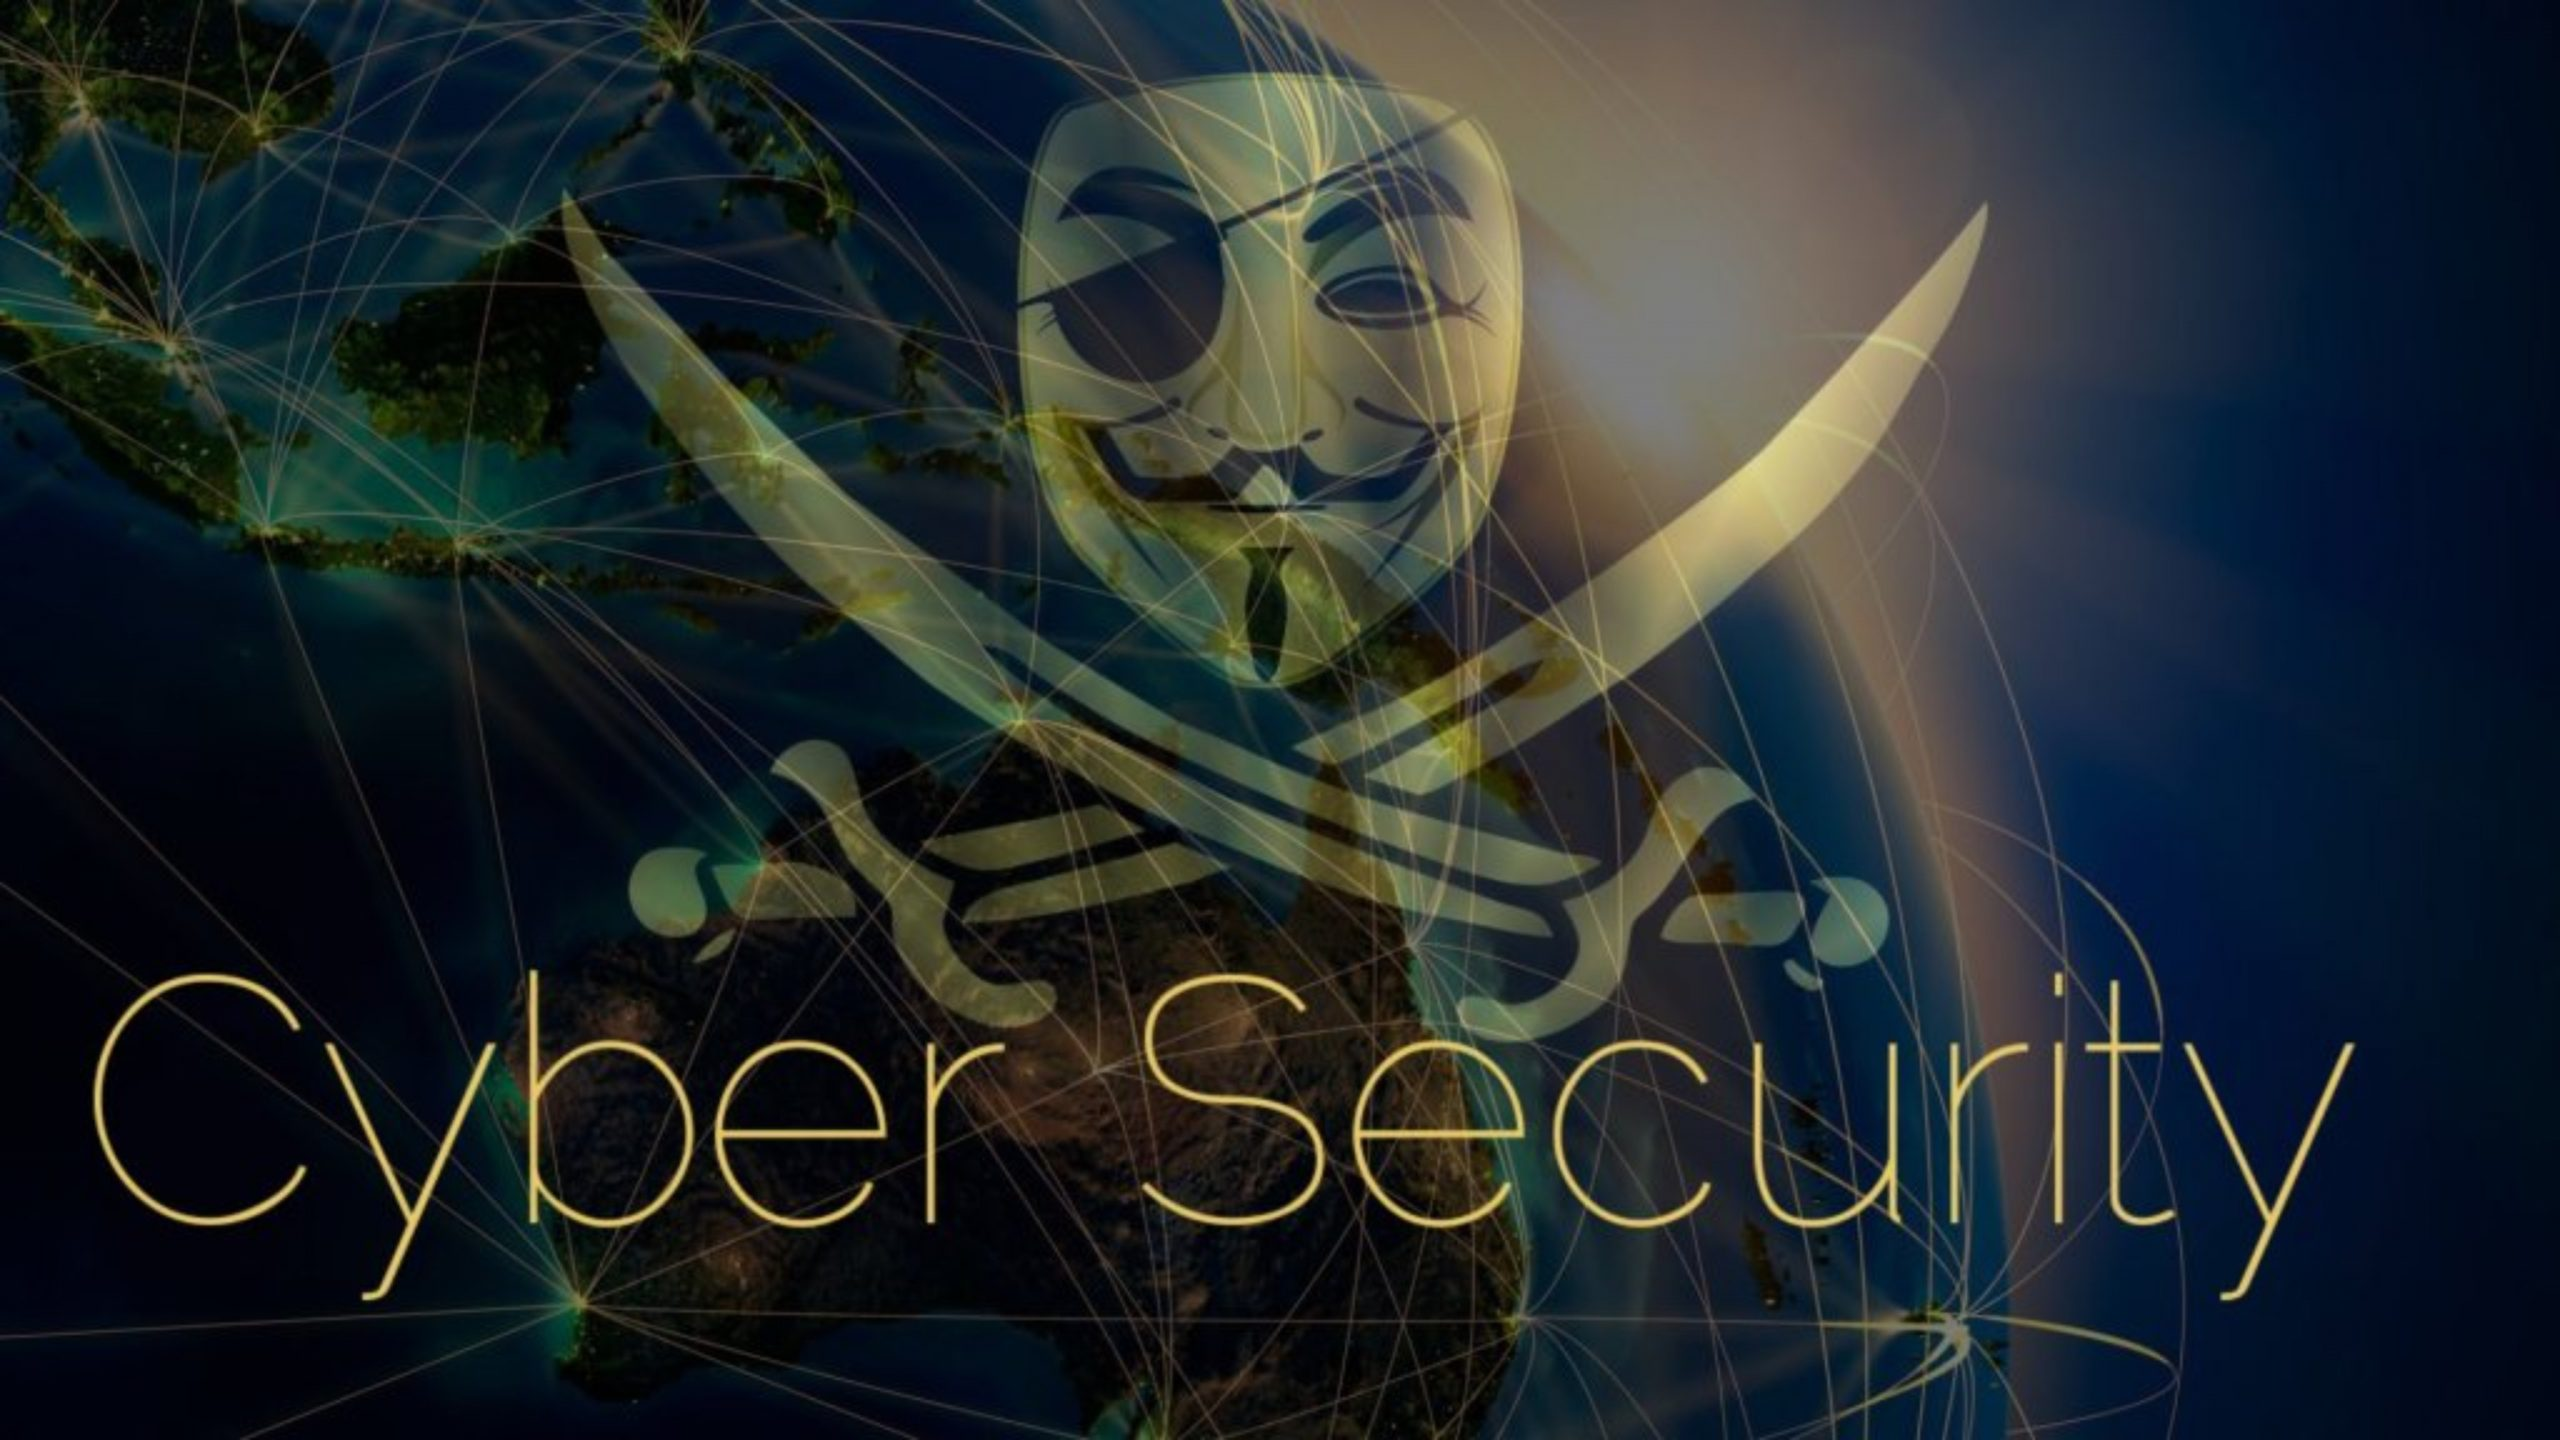 Hacking And Cyber Security